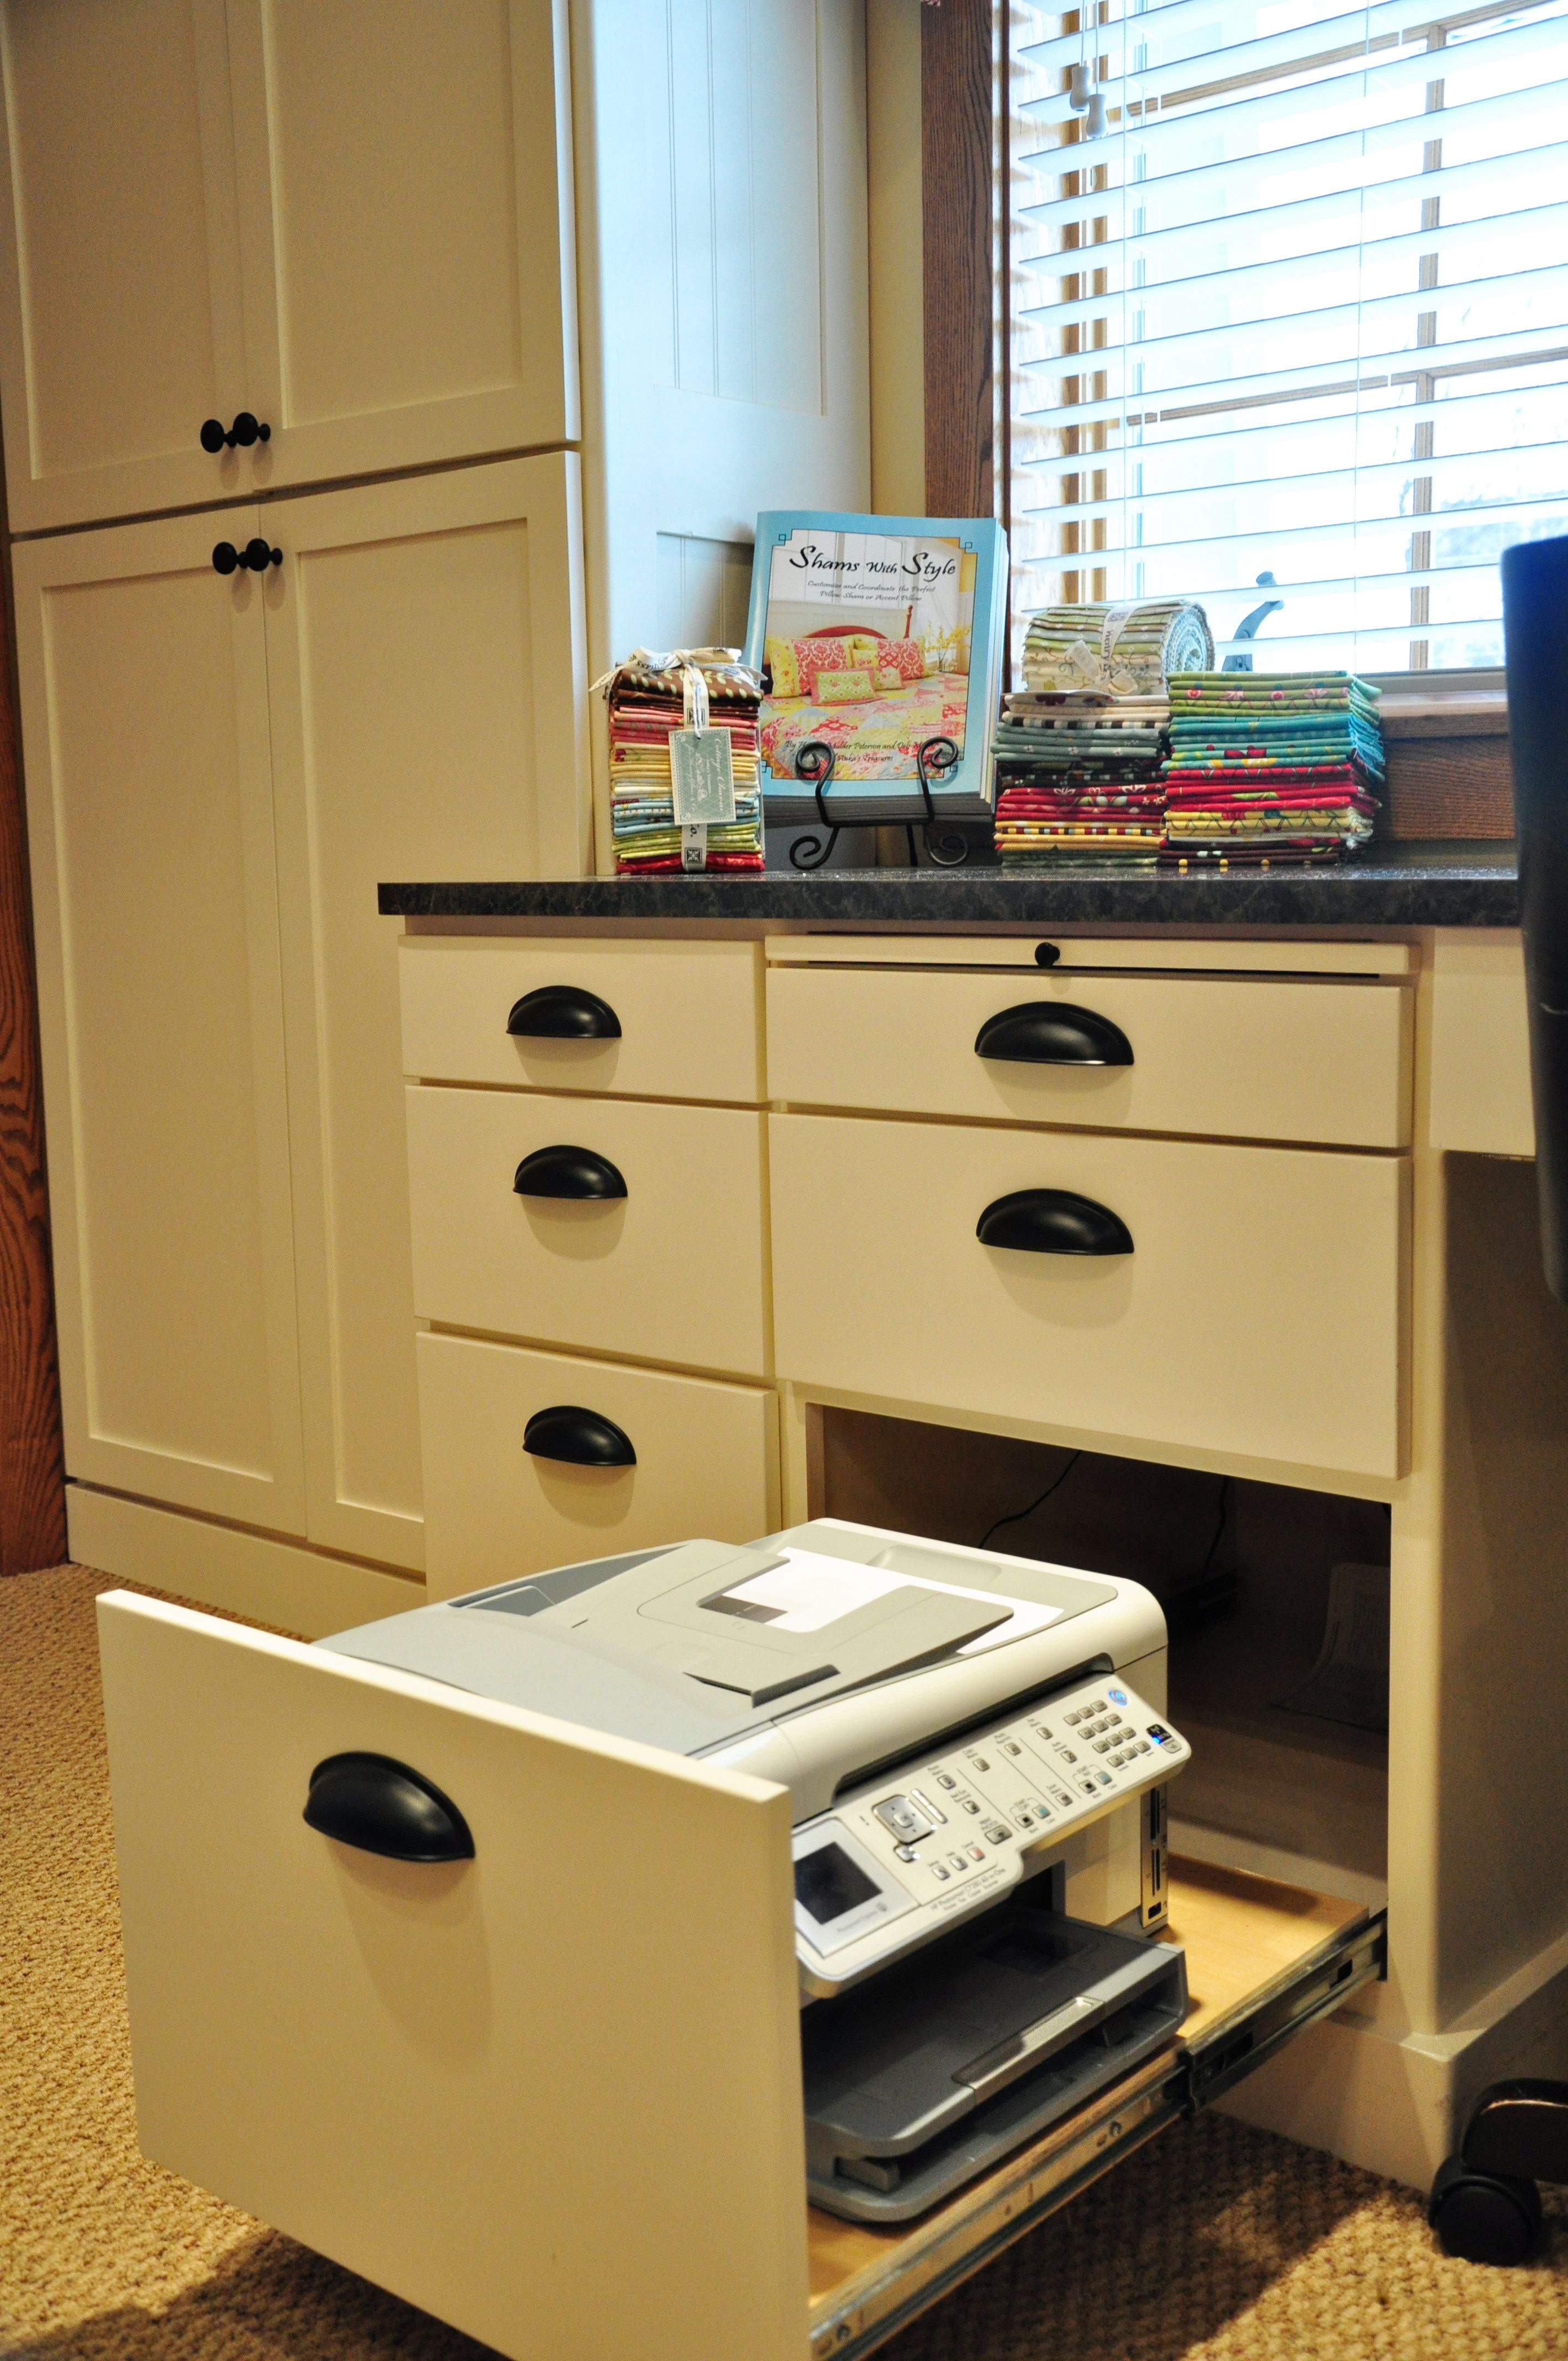 Roll out printer for study with cords for plug in inside - Home office cabinet design ideas ...